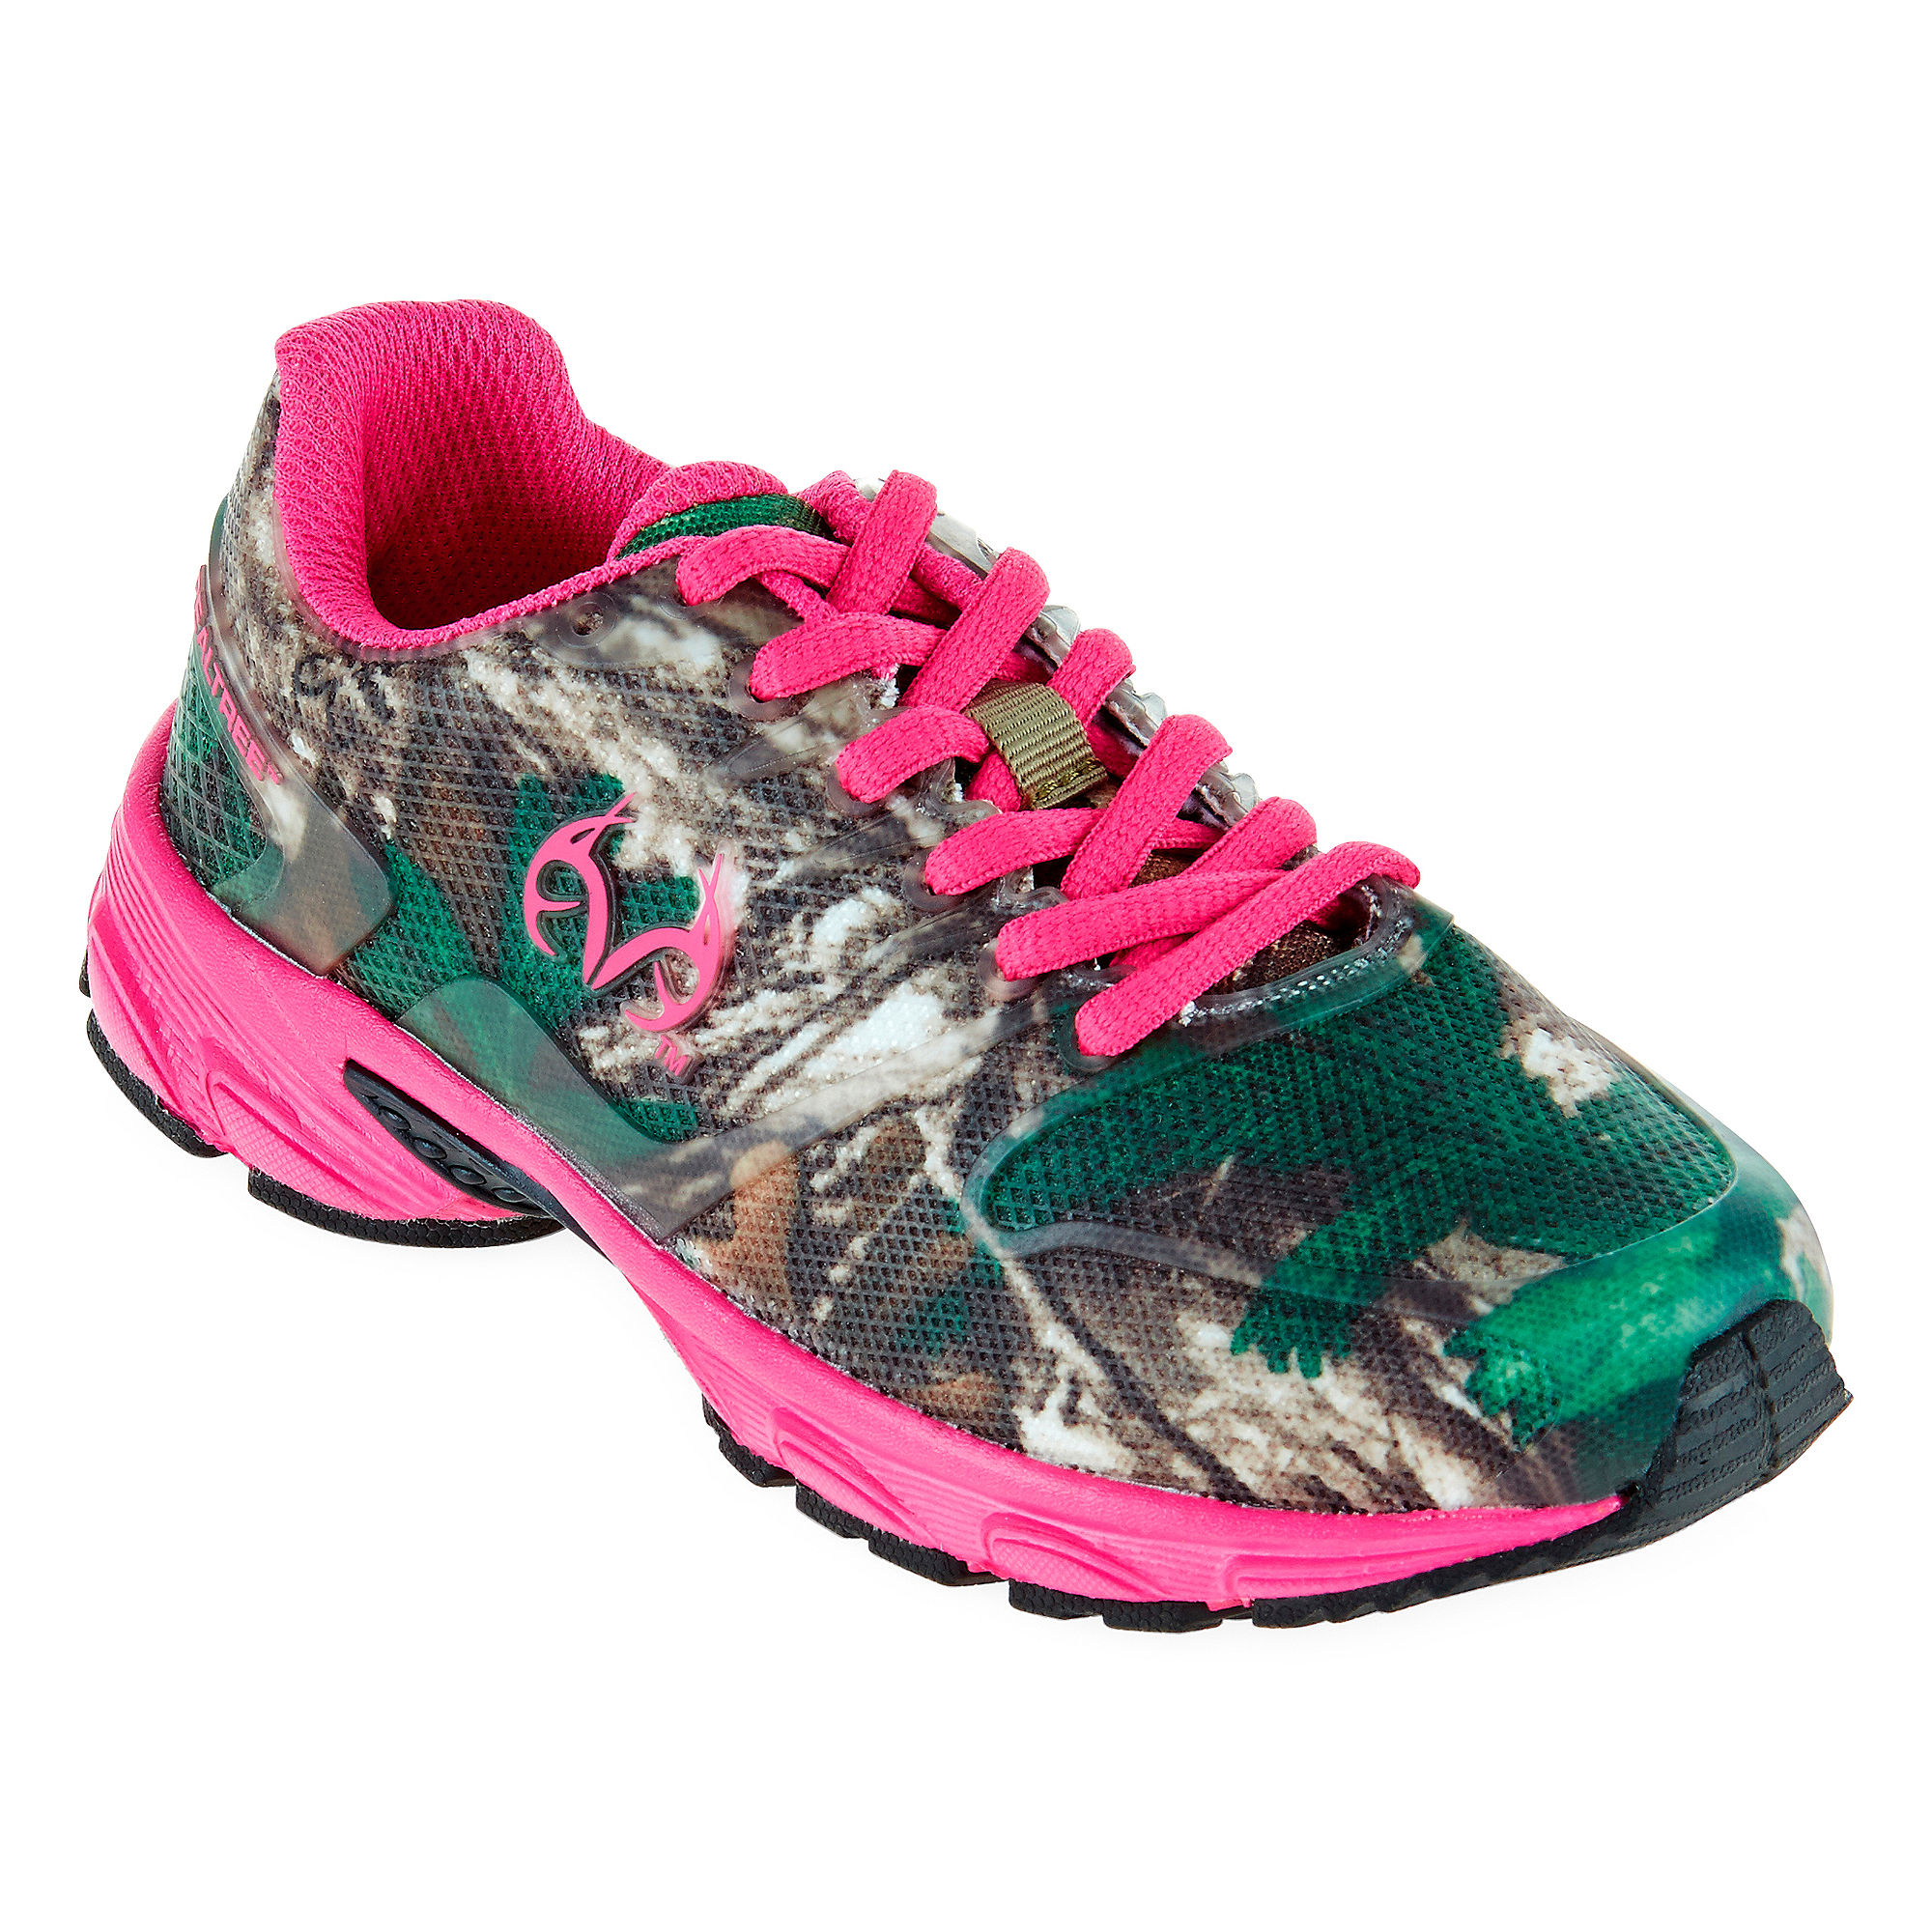 1413ab3c62bb4 ... PINK GREEN UPC 610152168093 product image for Realtree Cobra Girls  Athletic Shoes - Little Kids/Big Kids ...